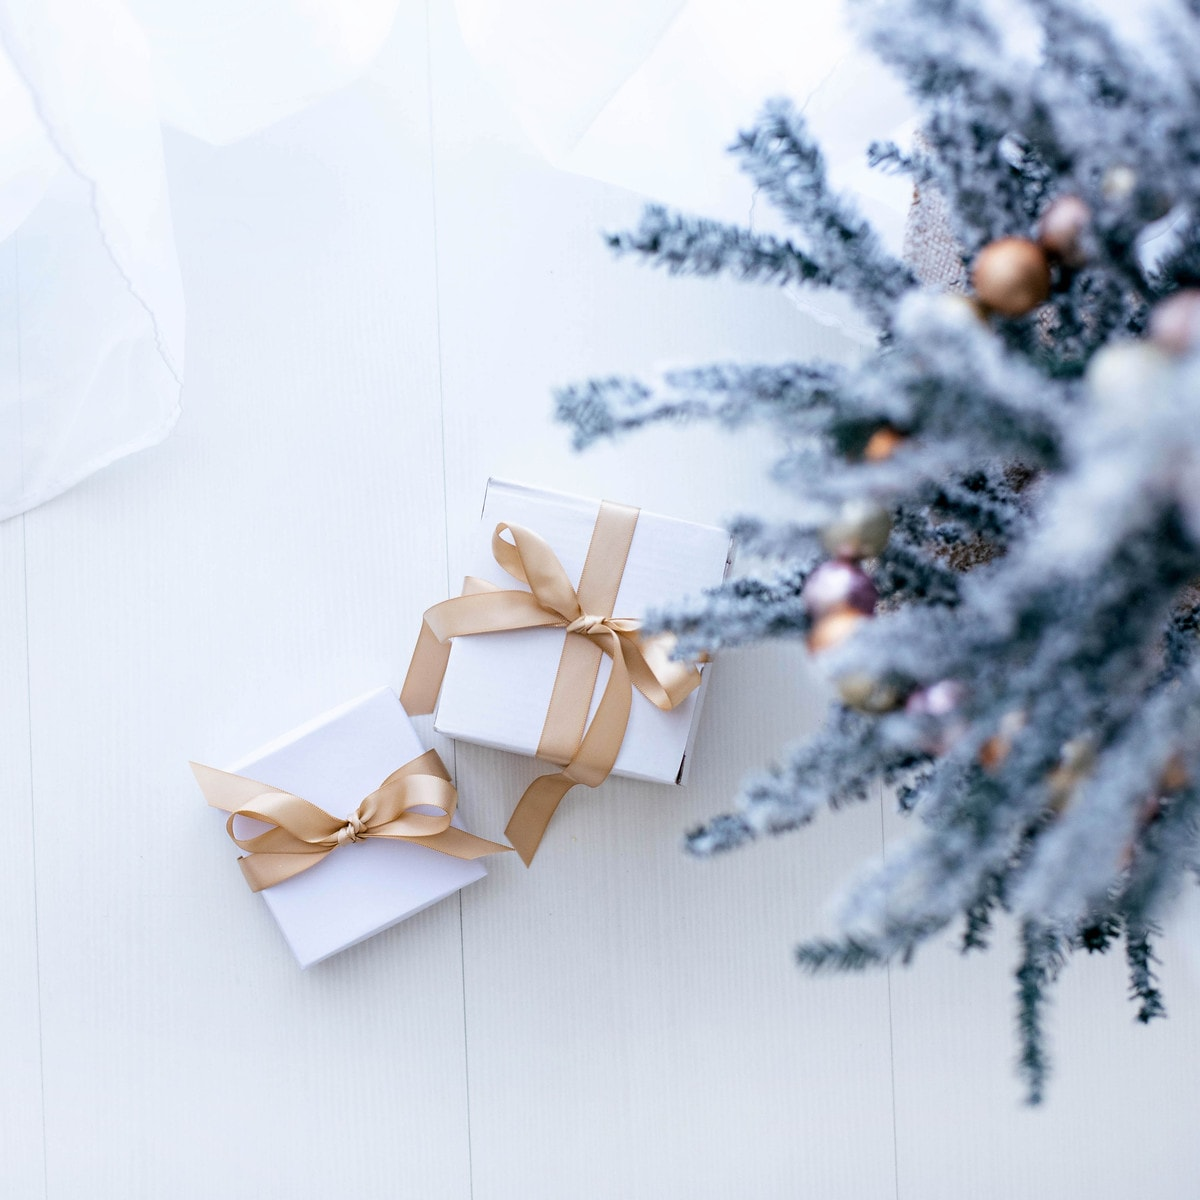 6 Things To Consider when Reshaping Your Home For the Holidays